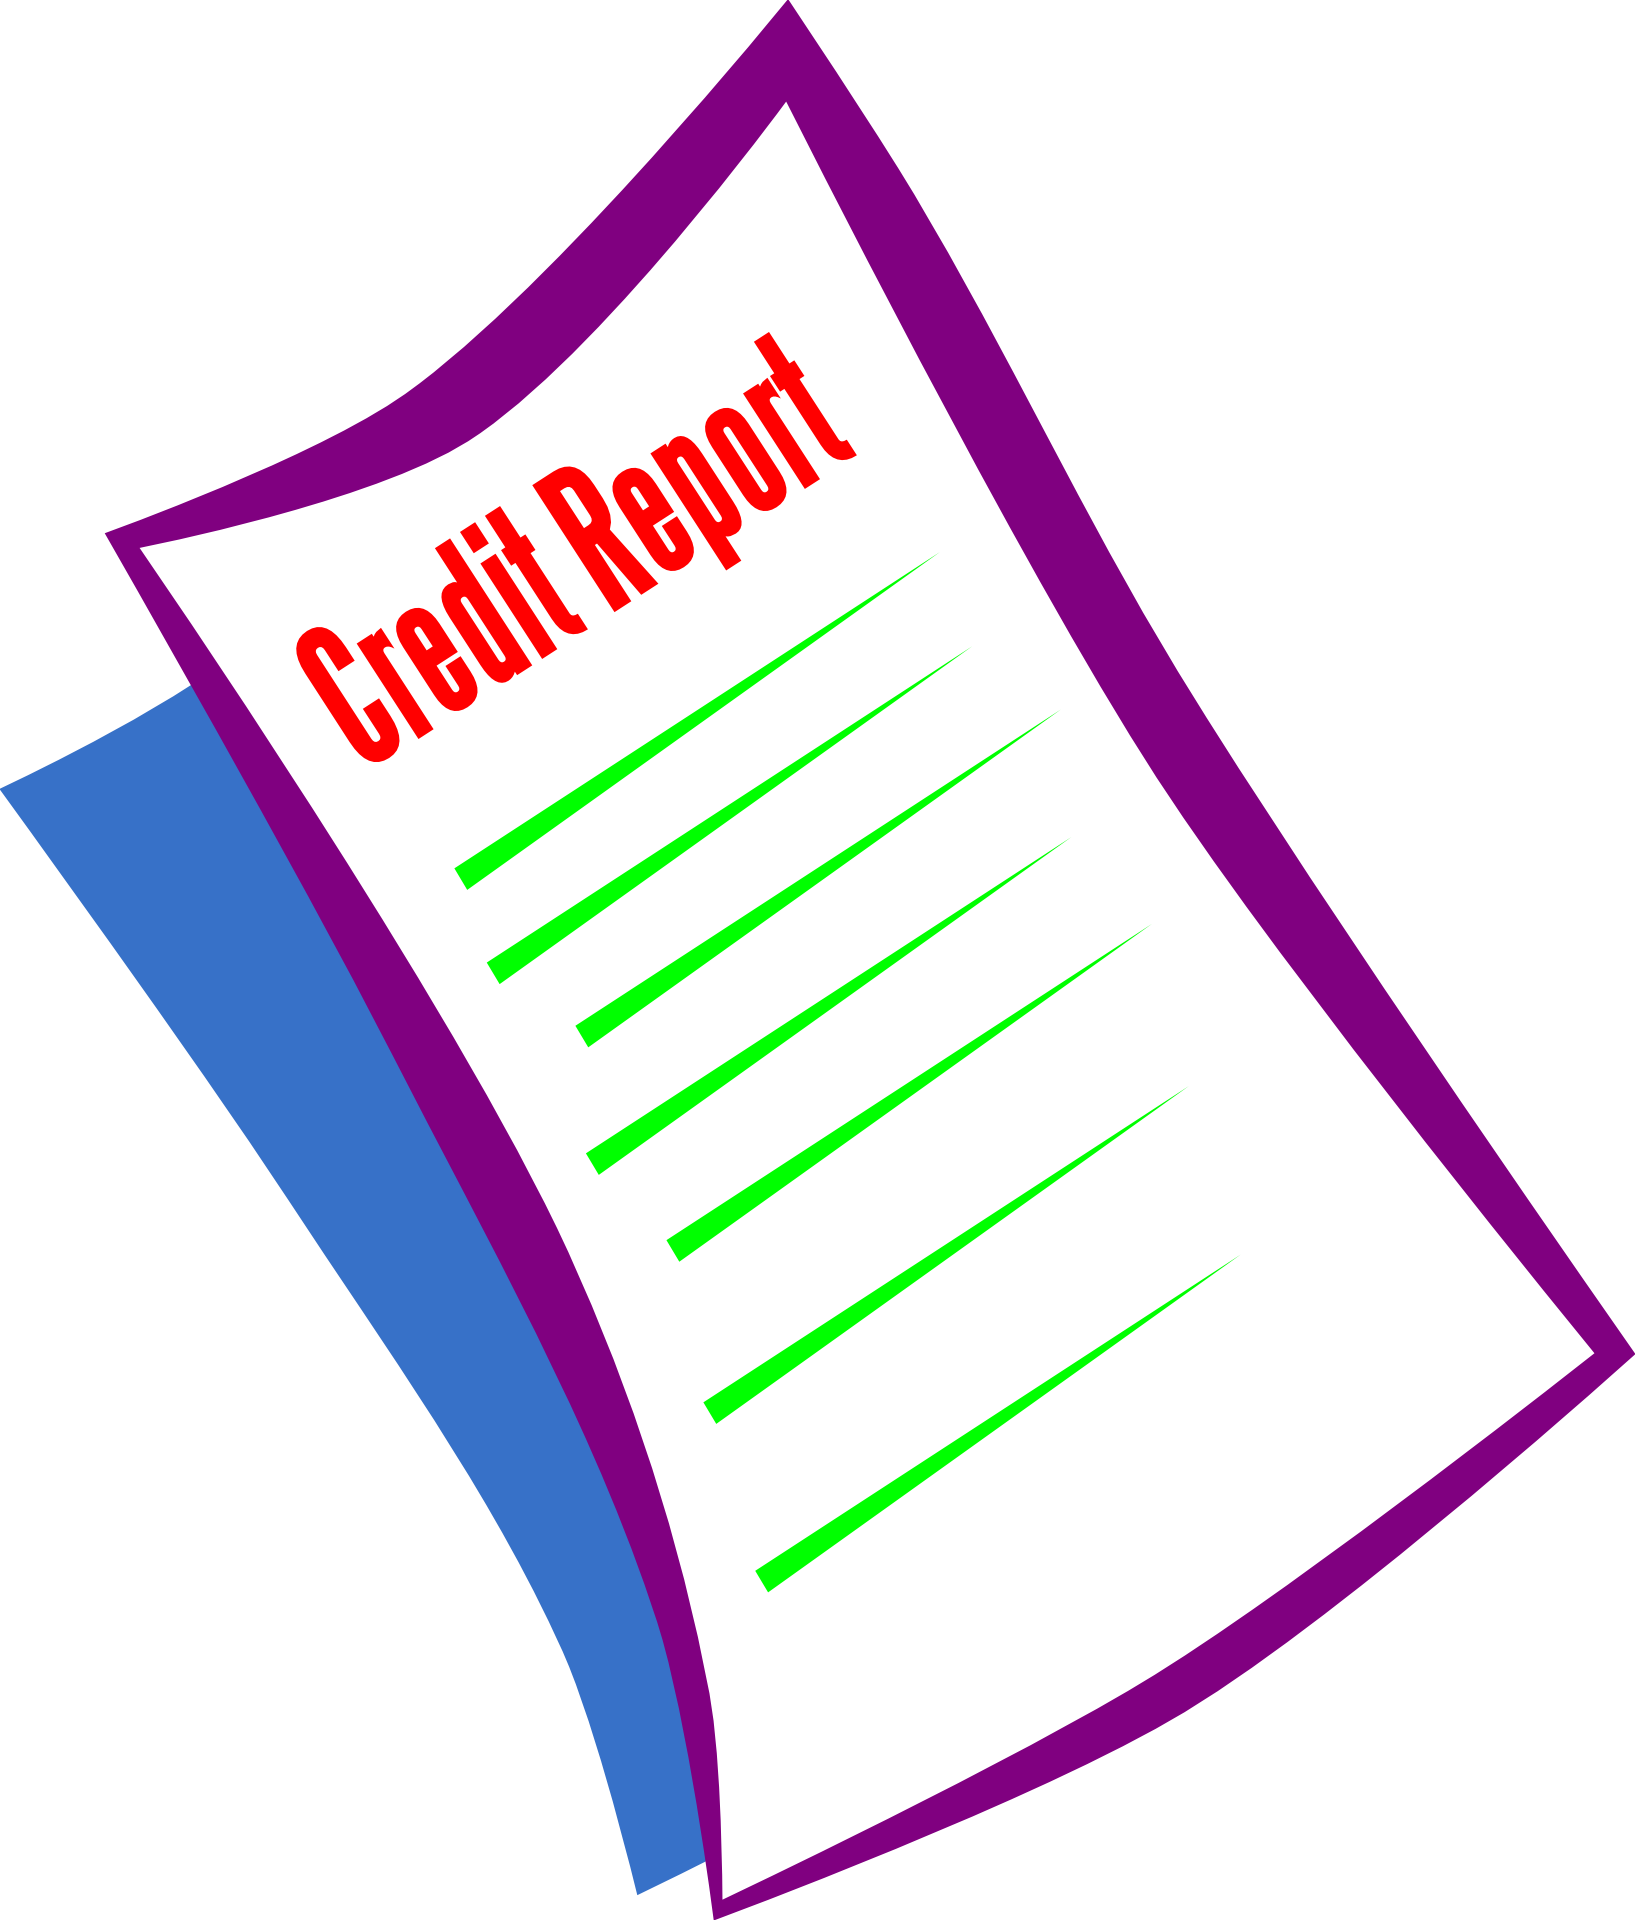 Clipart money check vector transparent library Commercial Credit Checks In South Africa - Credit Check Reports ... vector transparent library